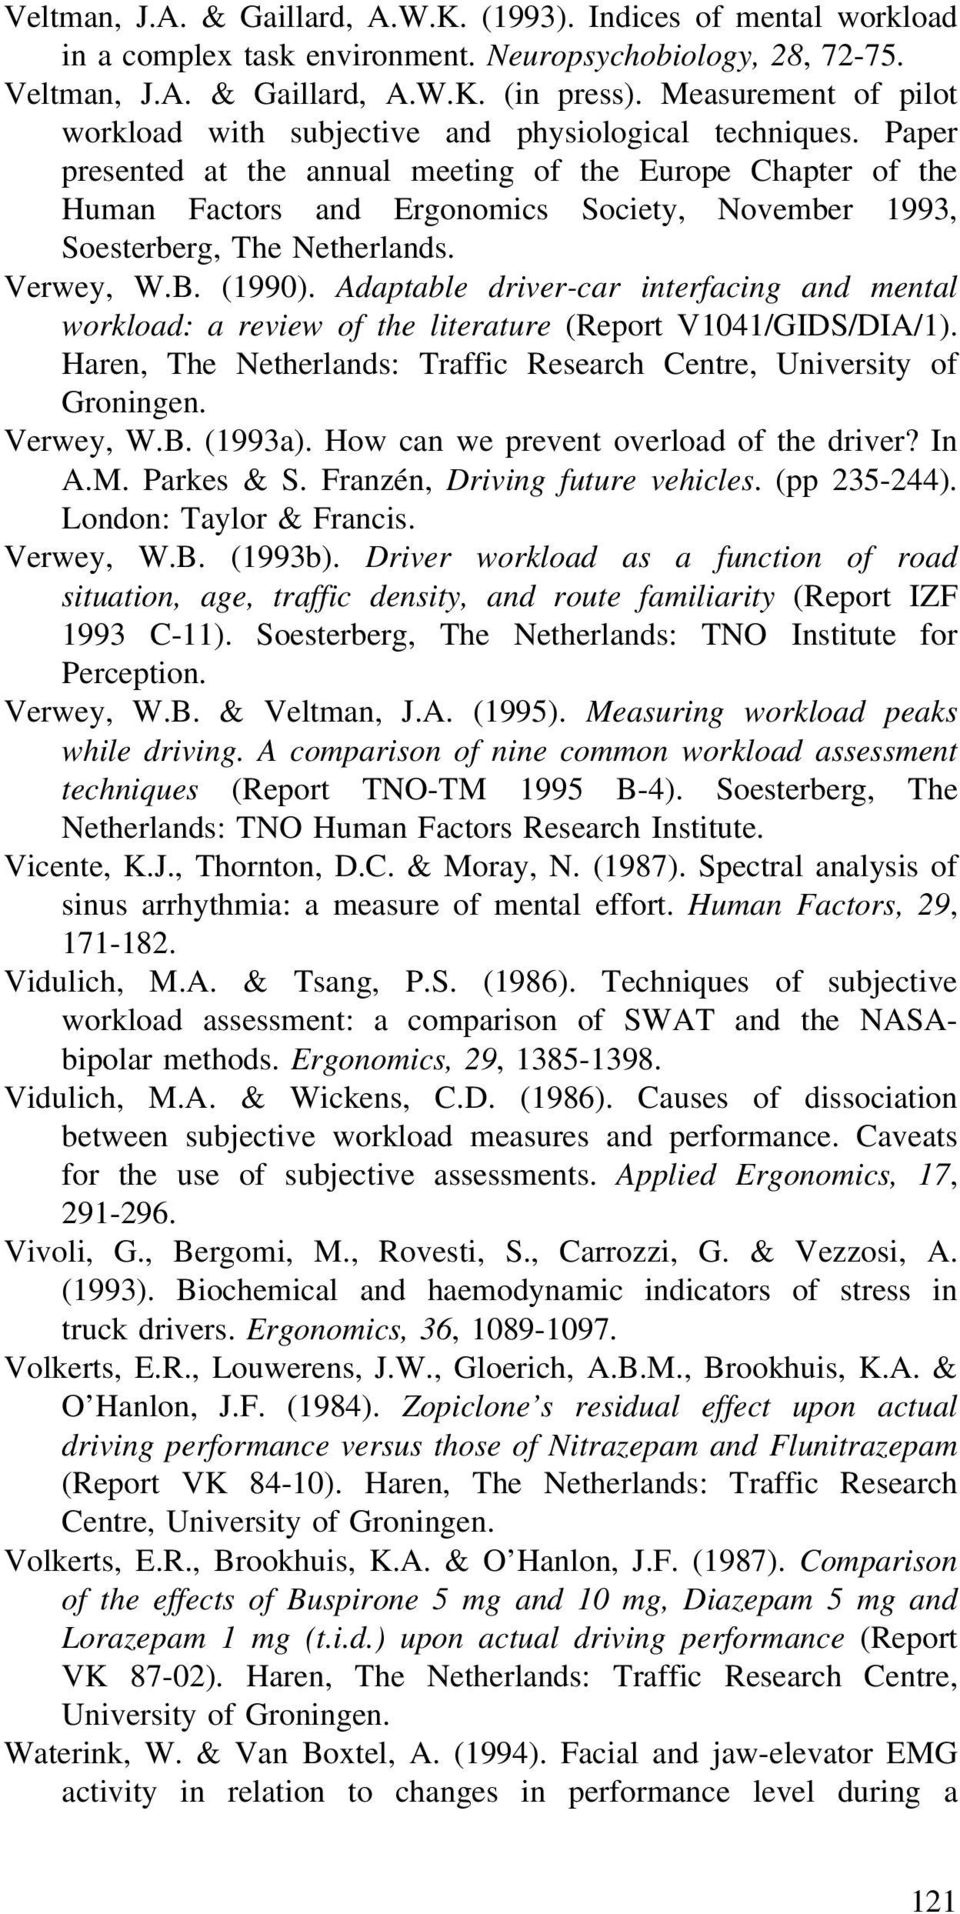 Paper presented at the annual meeting of the Europe Chapter of the Human Factors and Ergonomics Society, November 1993, Soesterberg, The Netherlands. Verwey, W.B. (1990).